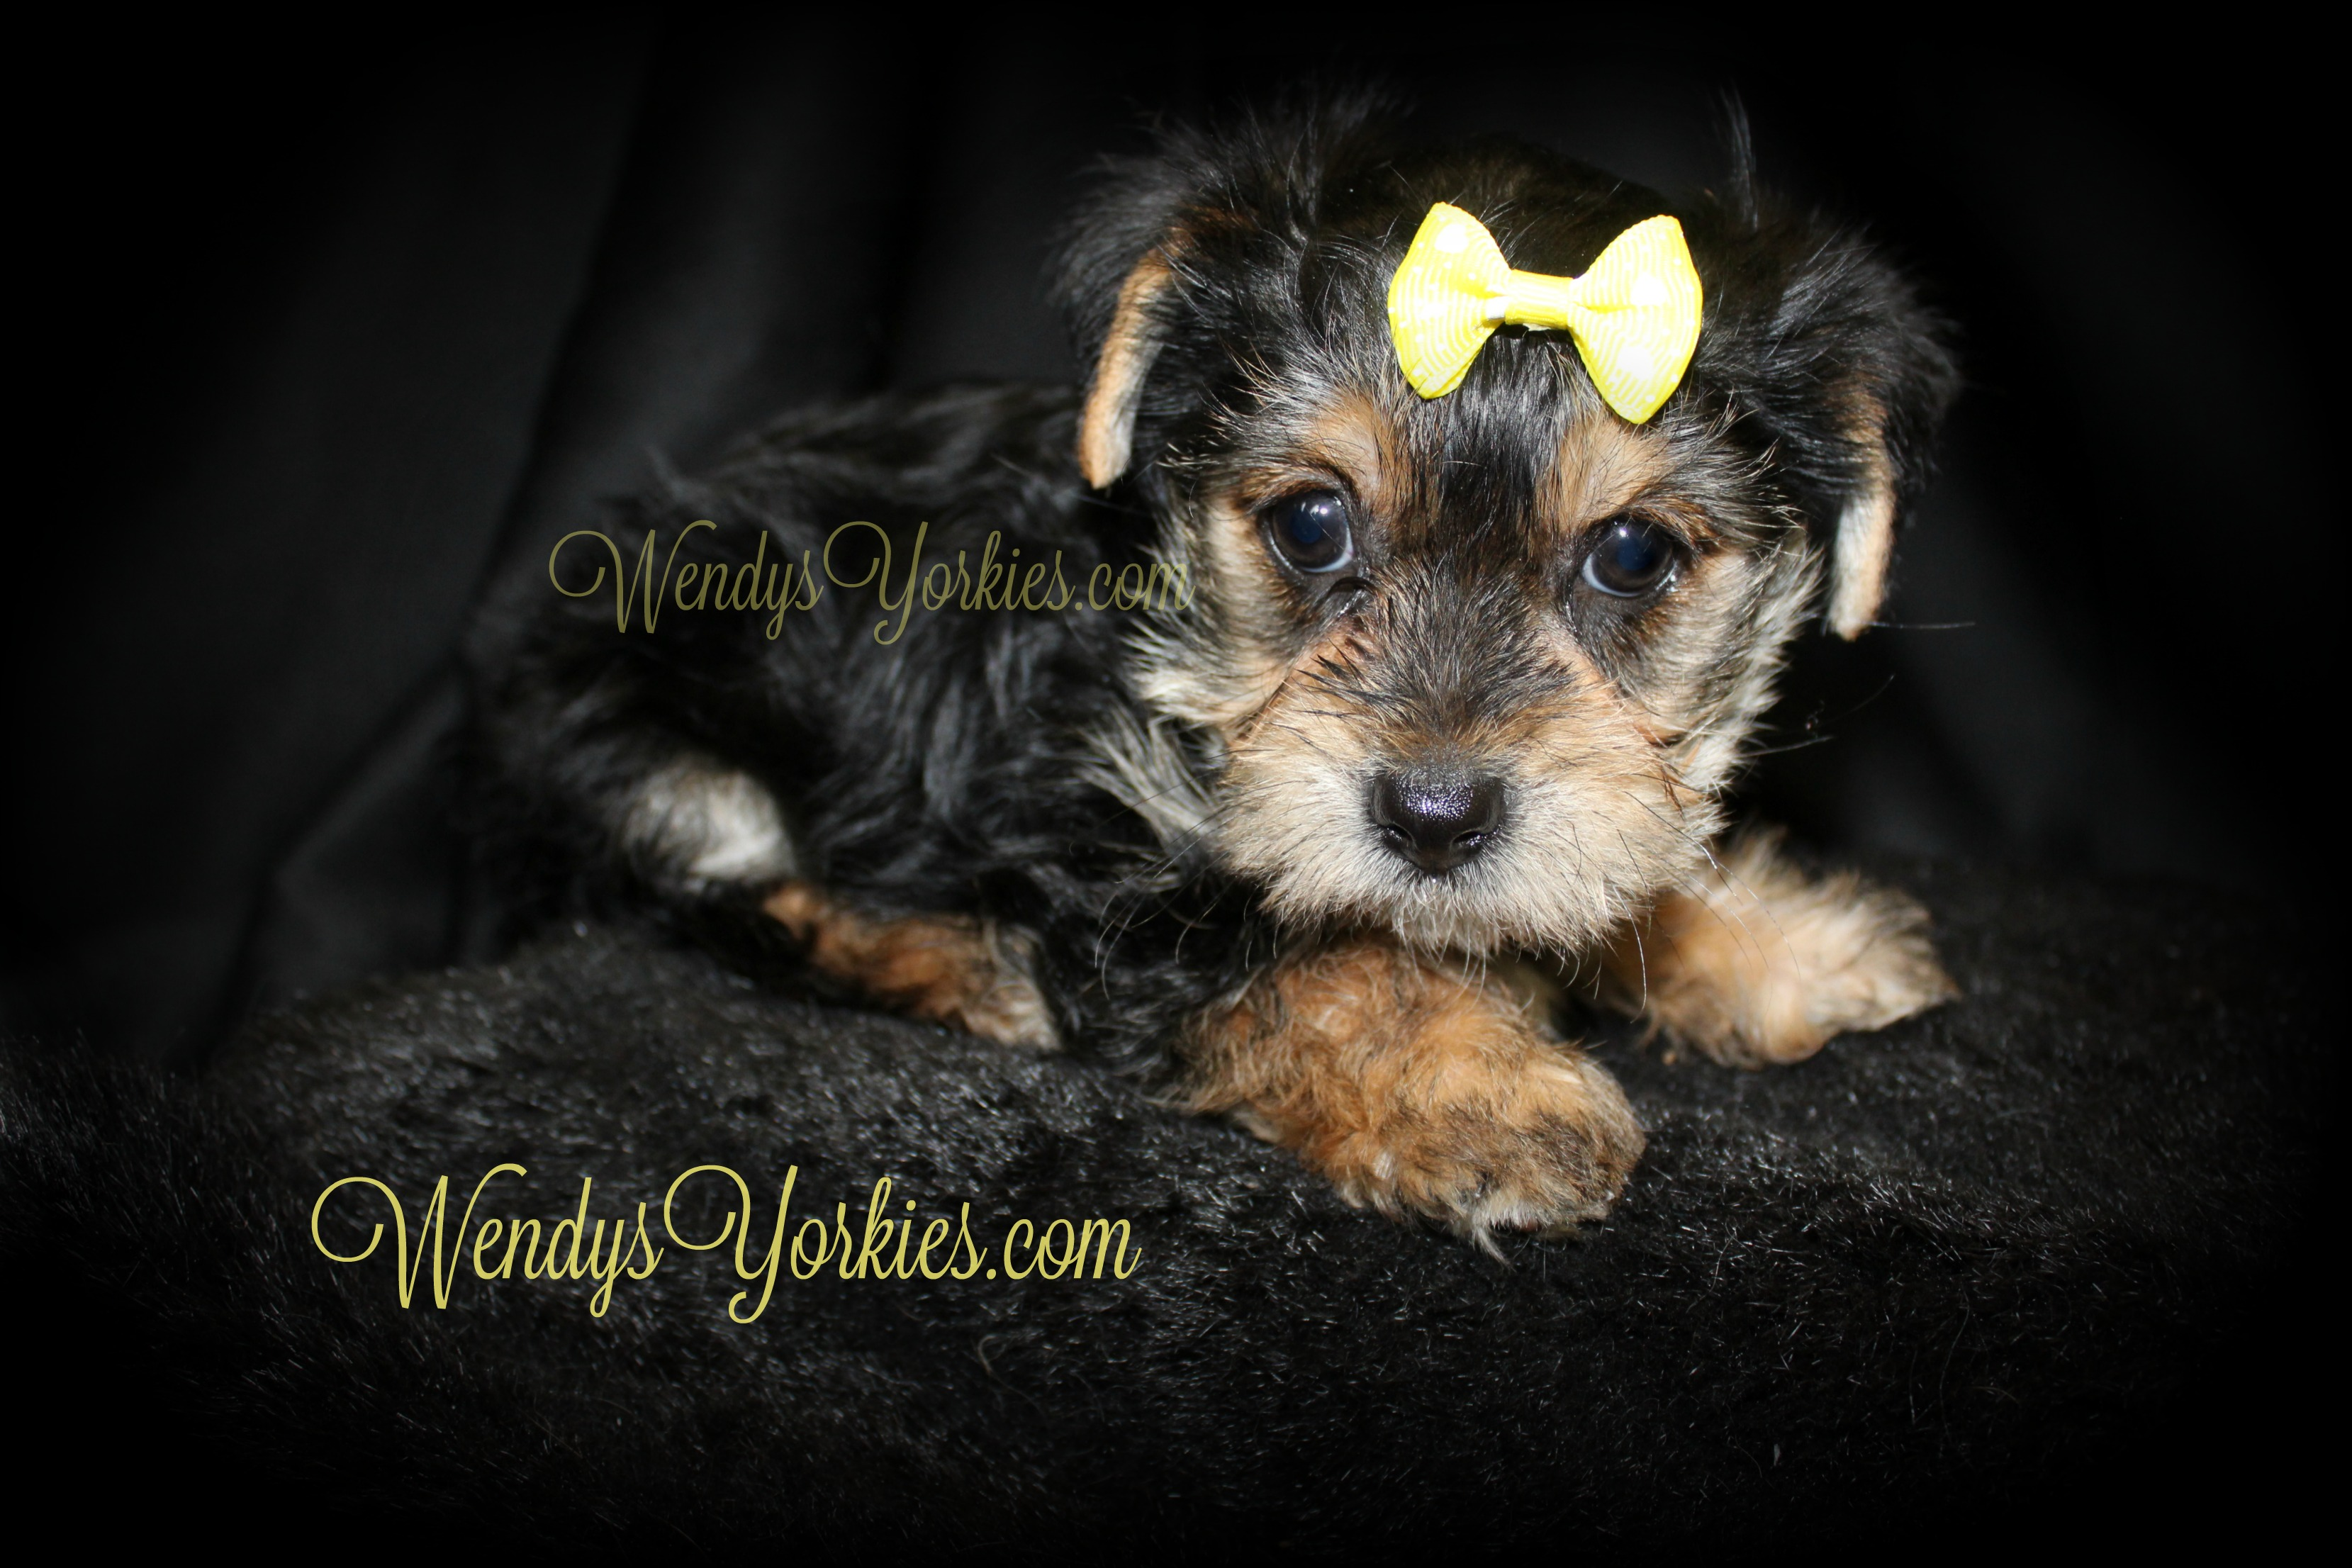 Female Yorkie puppy for sale, WendysYorkies, Pipper